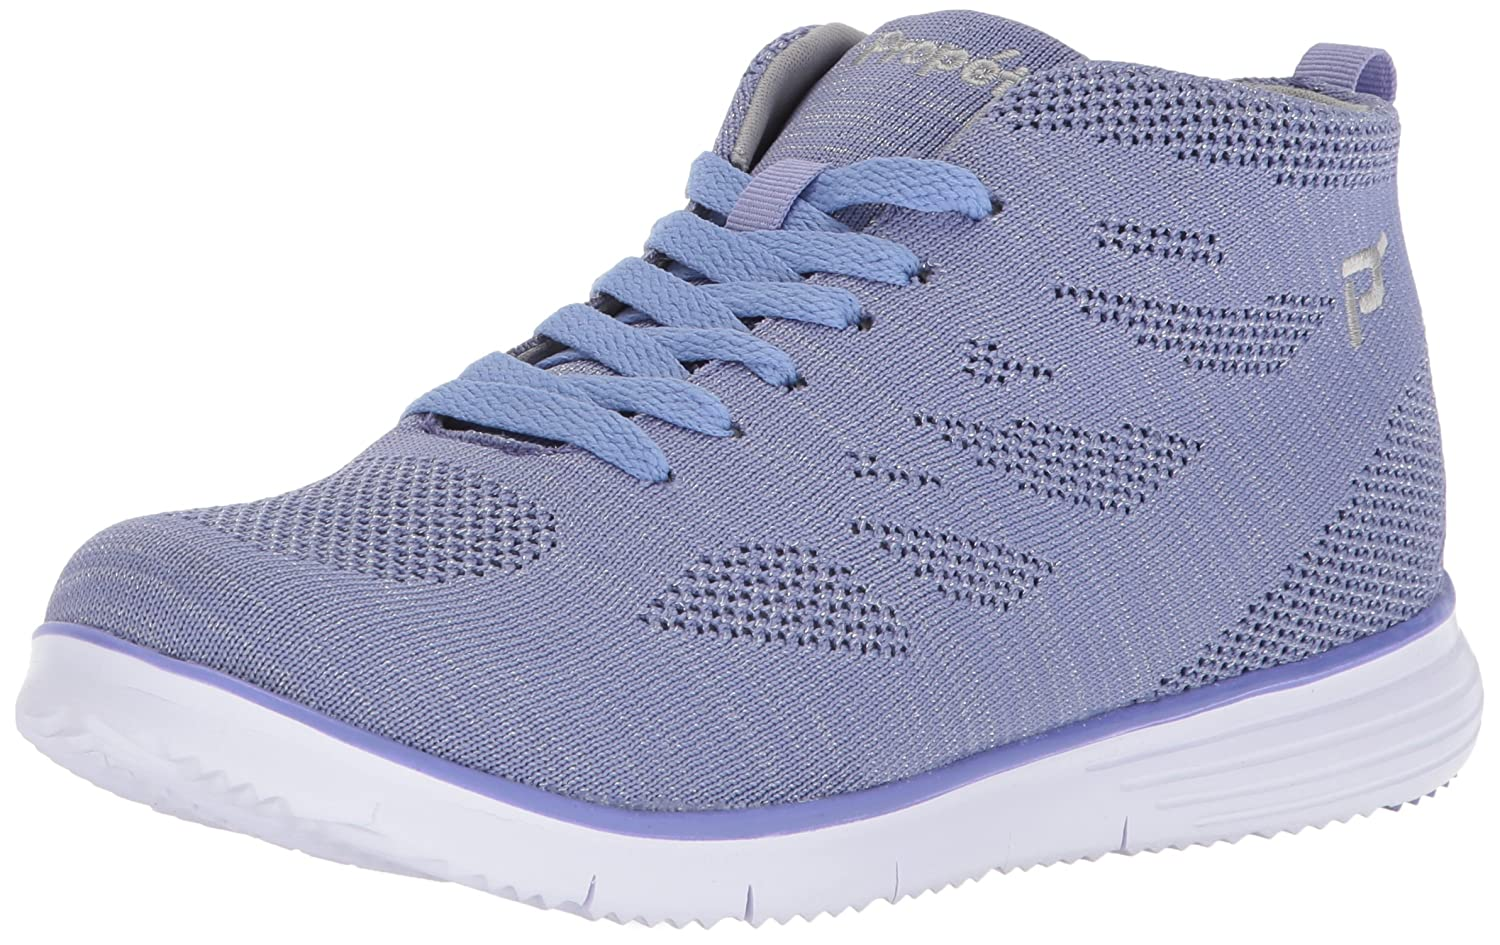 Propet Women's TravelFit Hi Walking Shoe B073DPKW2W 11 N US|Purple/Silver